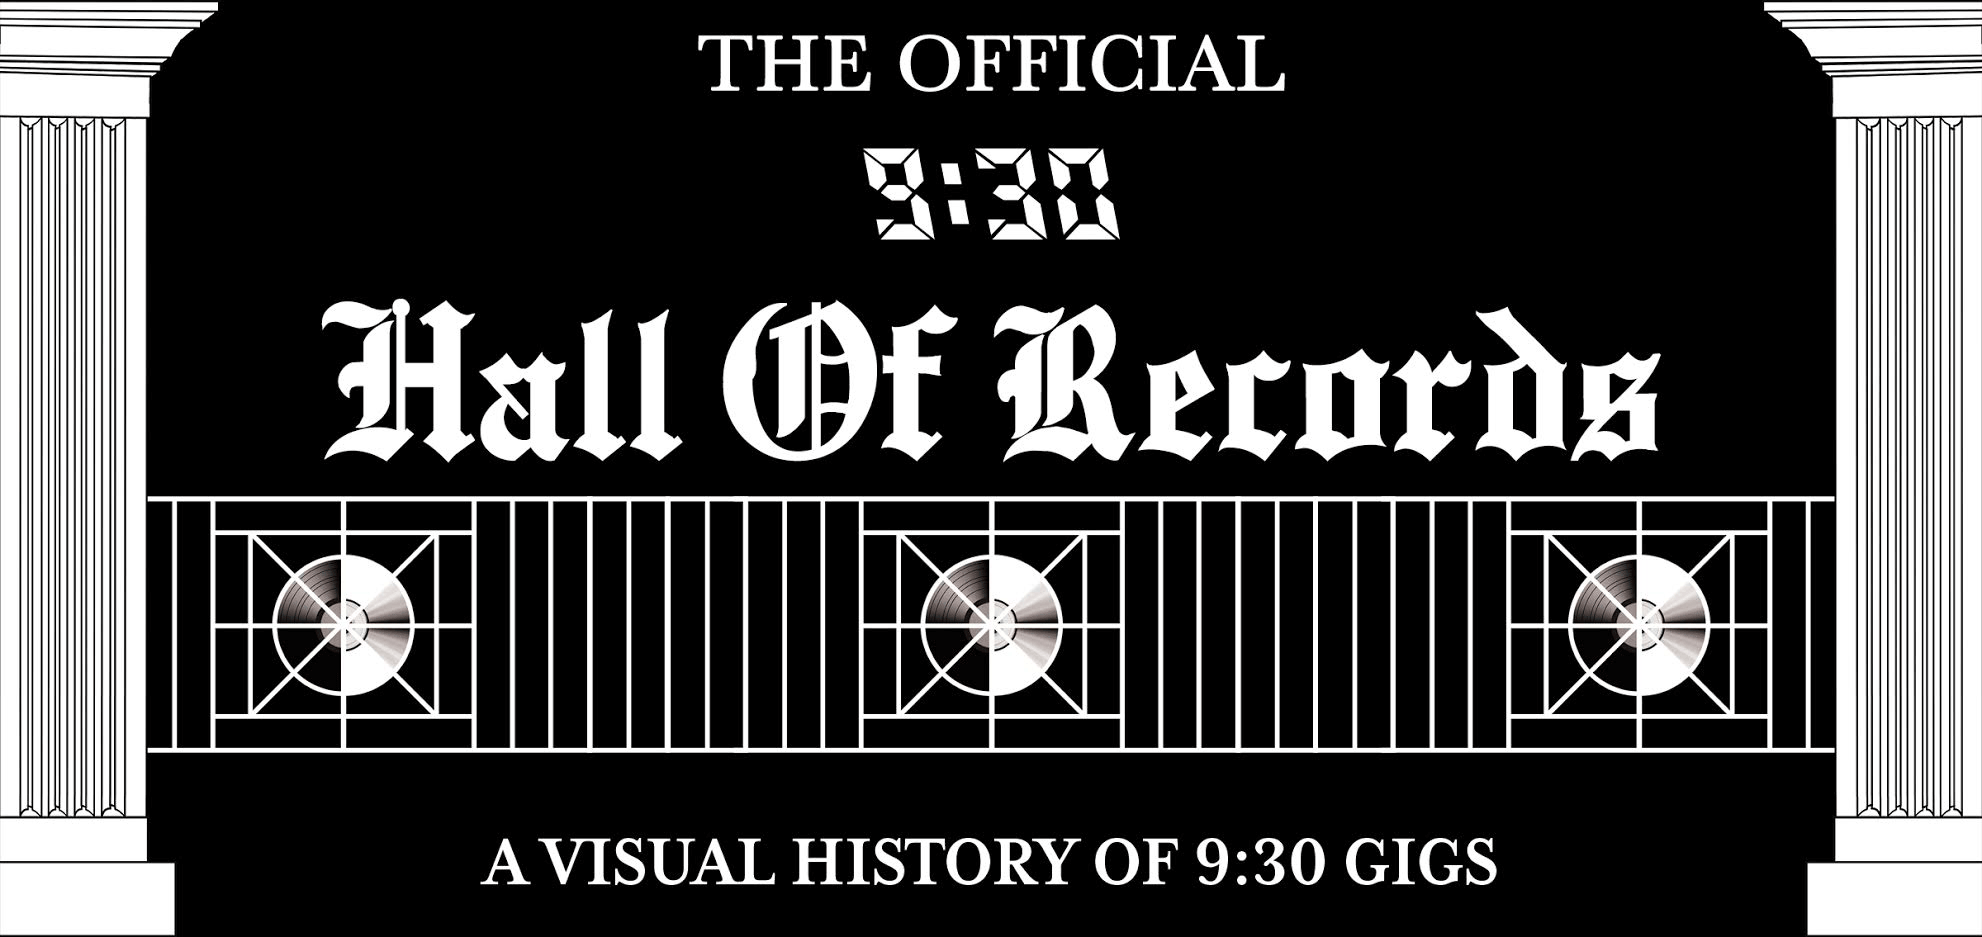 The Official 9:30 Club Hall of Records - A Visual History of 9:30 Gigs